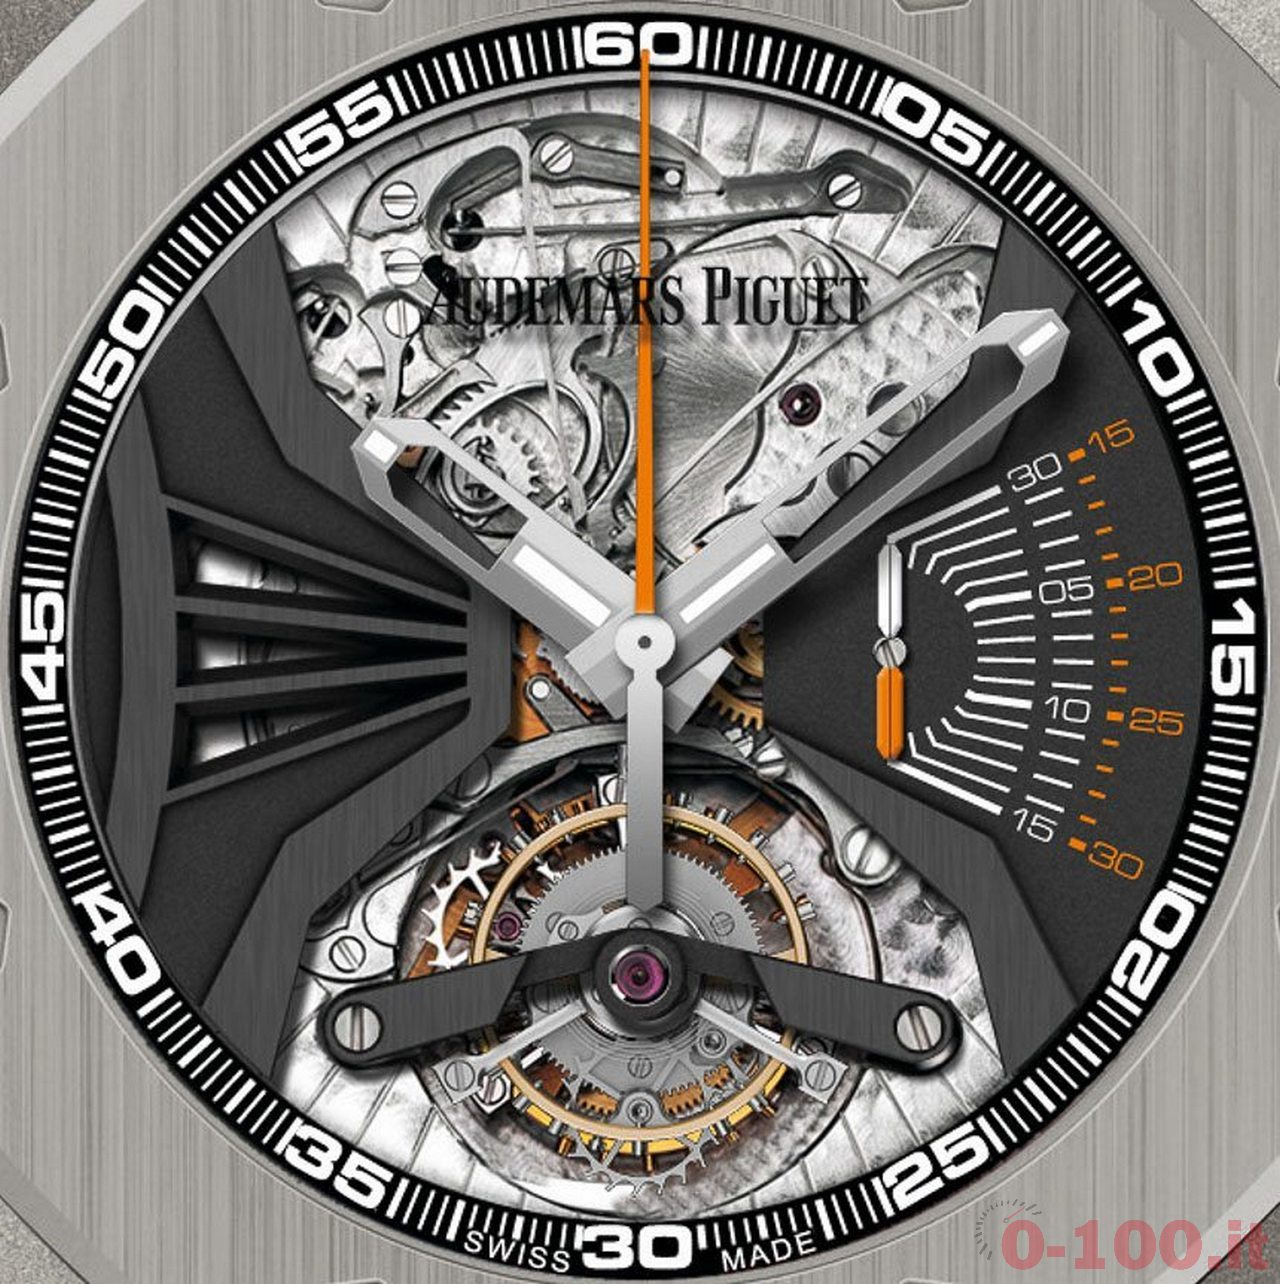 anteprima-sihh-2015-audemars-piguet-royal-oak-concept-acoustic-research_0-100_3